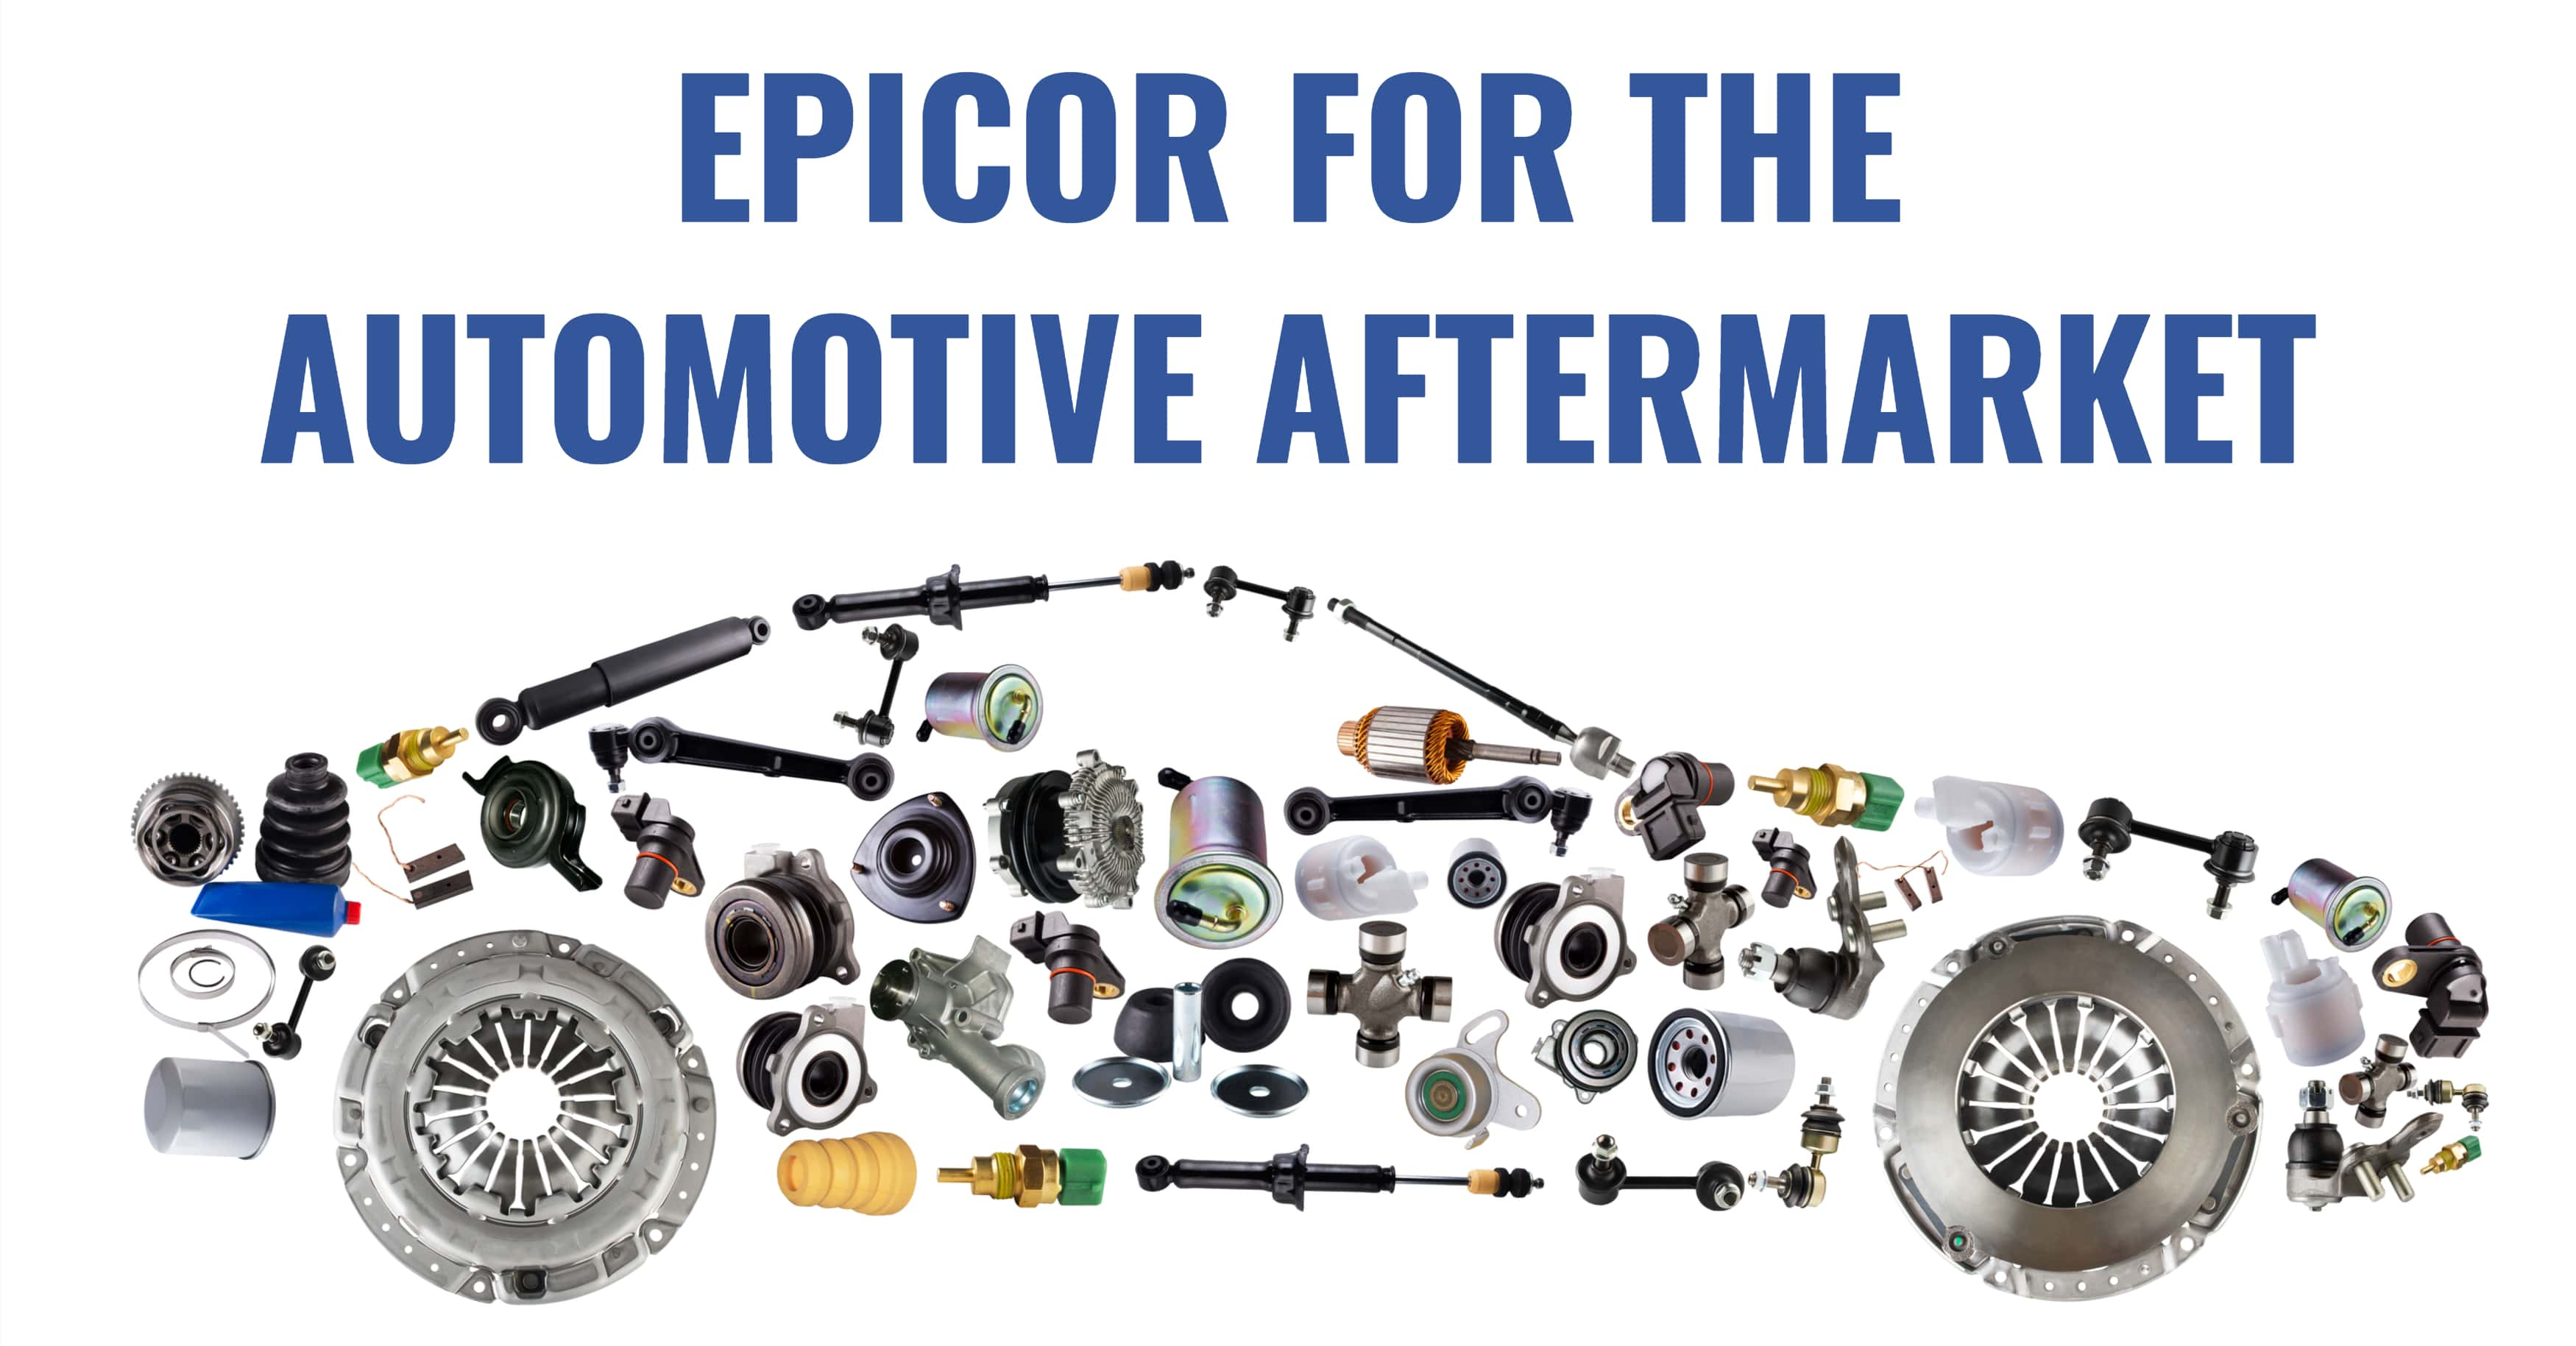 Epicor's Latest Advancements for the Automotive Aftermarket